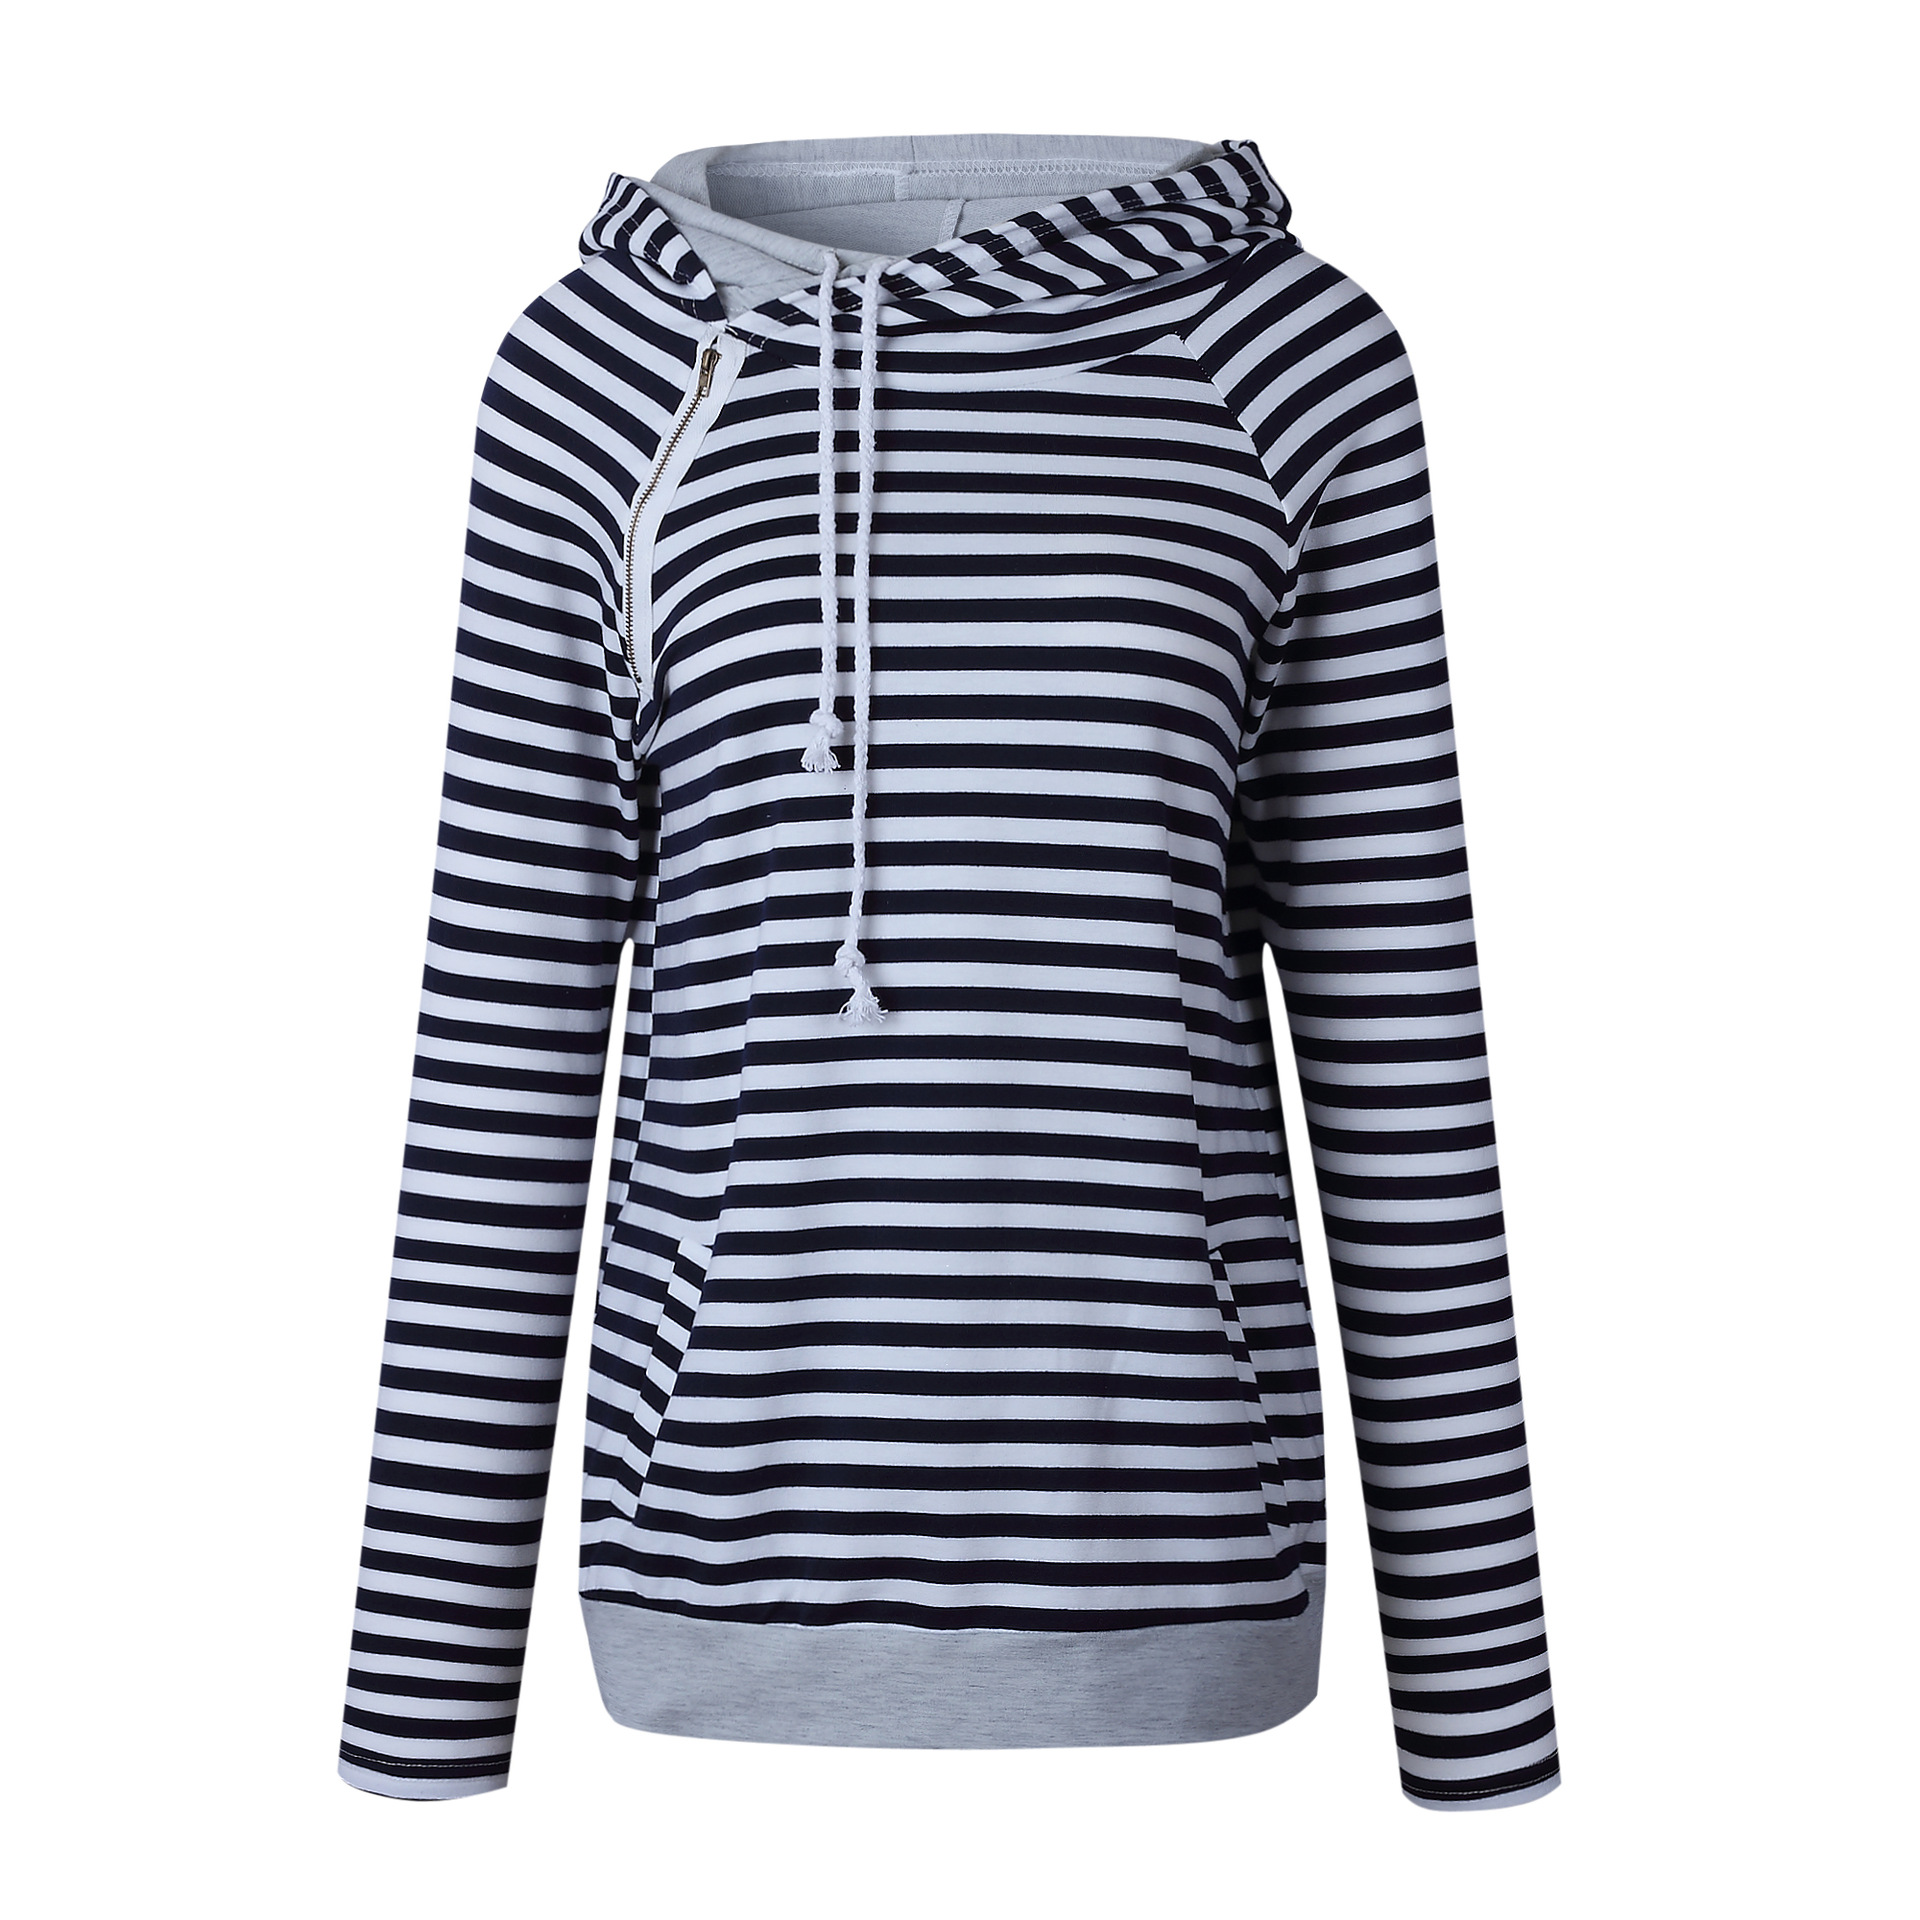 Women's Patchwork Striped Pullover Long Sleeve Hoodie, Tops With Pockets, Hooded Sweatshirt 3